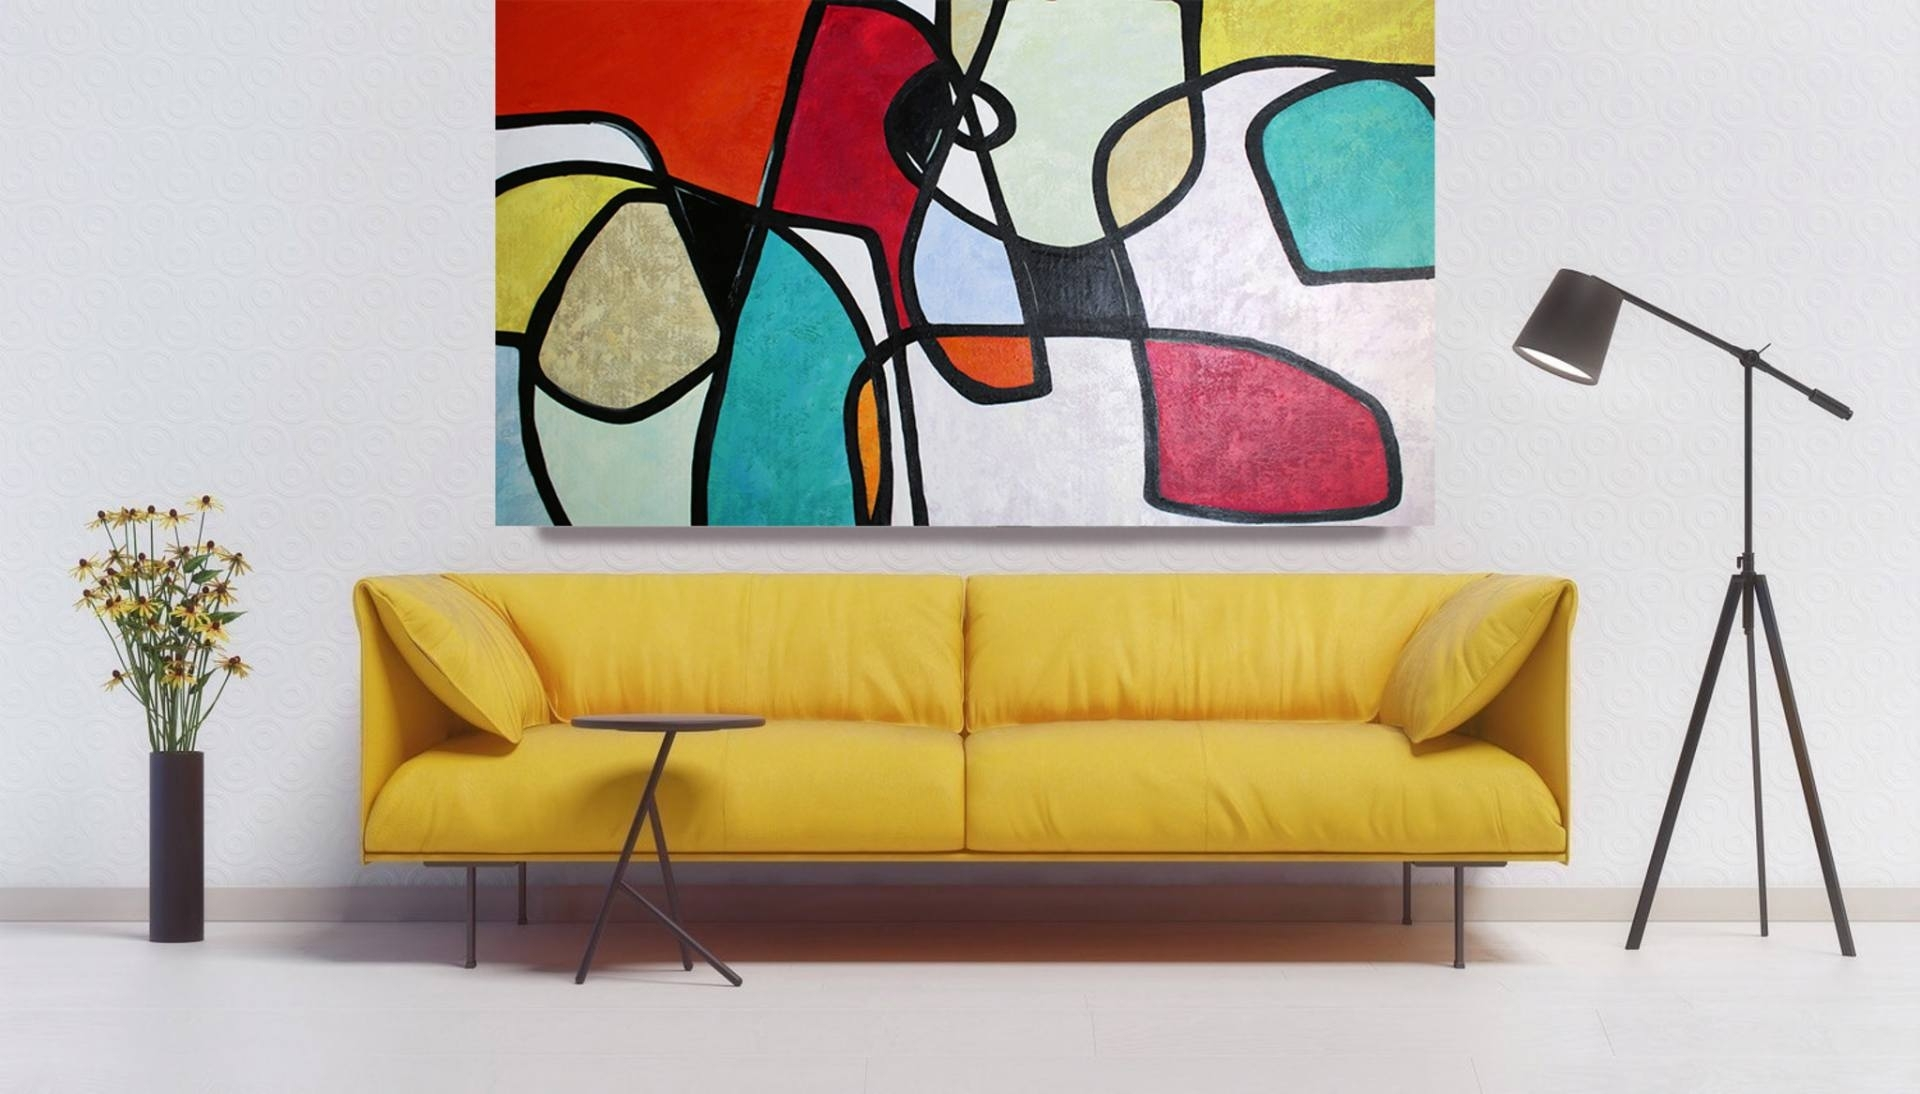 Saatchi Art: Vibrant Colorful Mid Century Abstract 0 16 Original Oil Intended For Mid Century Wall Art (View 5 of 20)